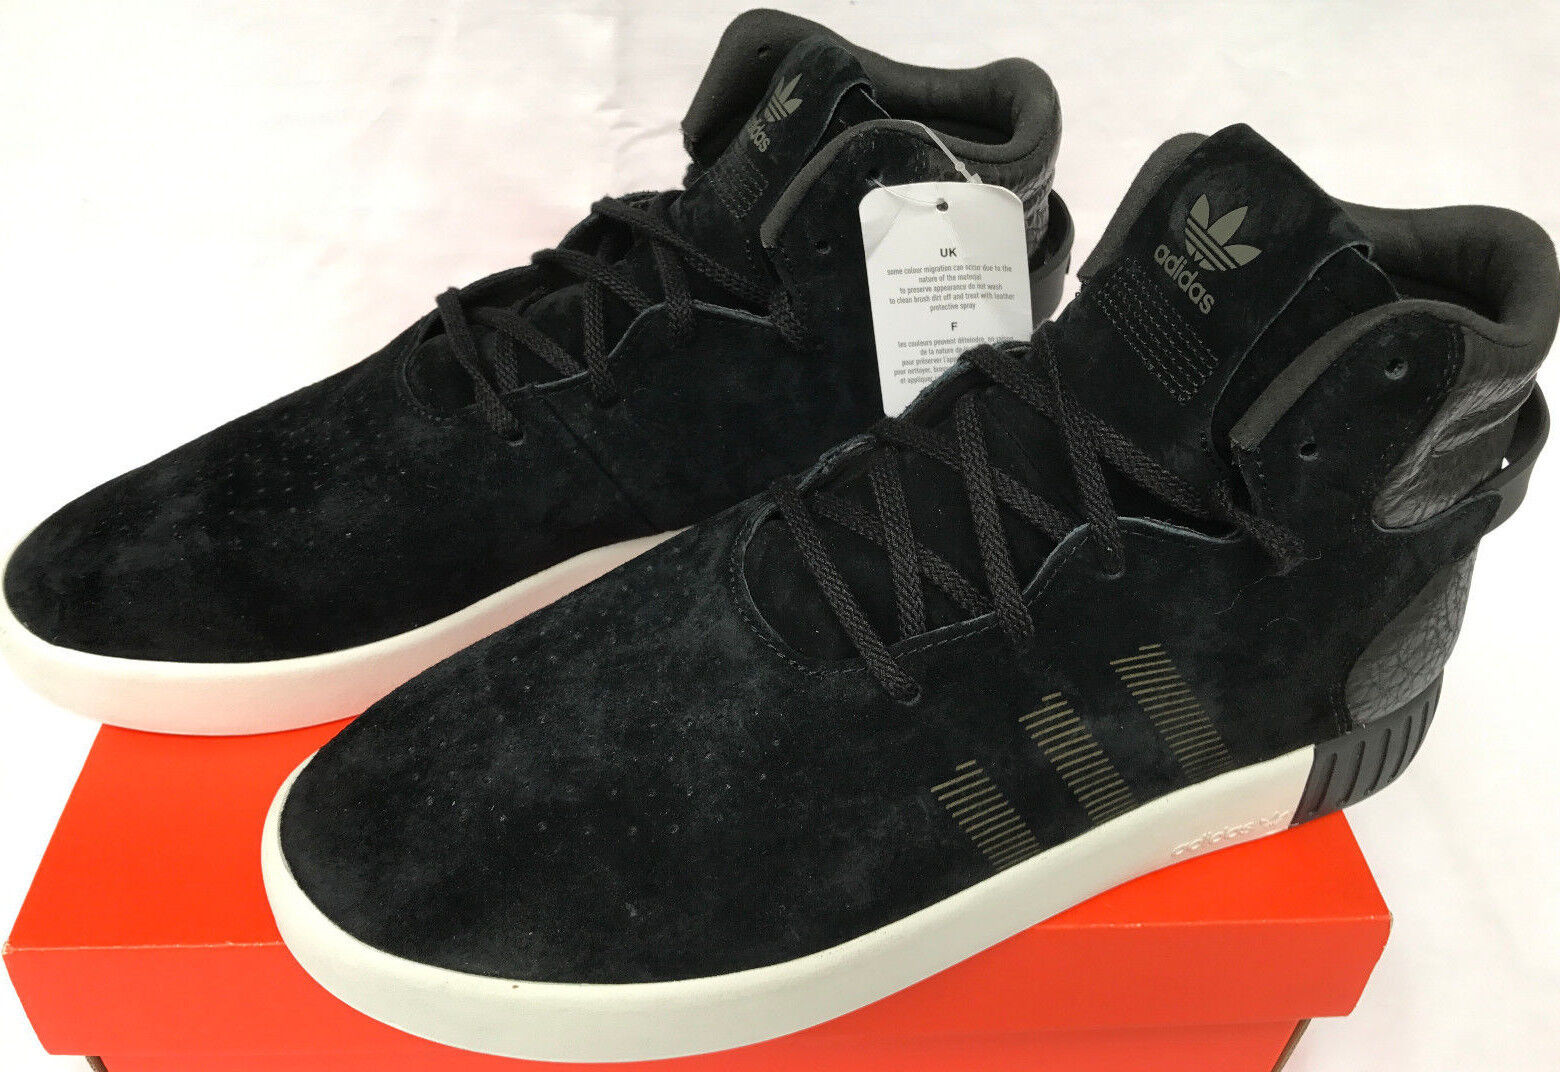 Adidas Tubular Invader S80241 Noir Suede Leather Basketball Shoes Men's 11 new